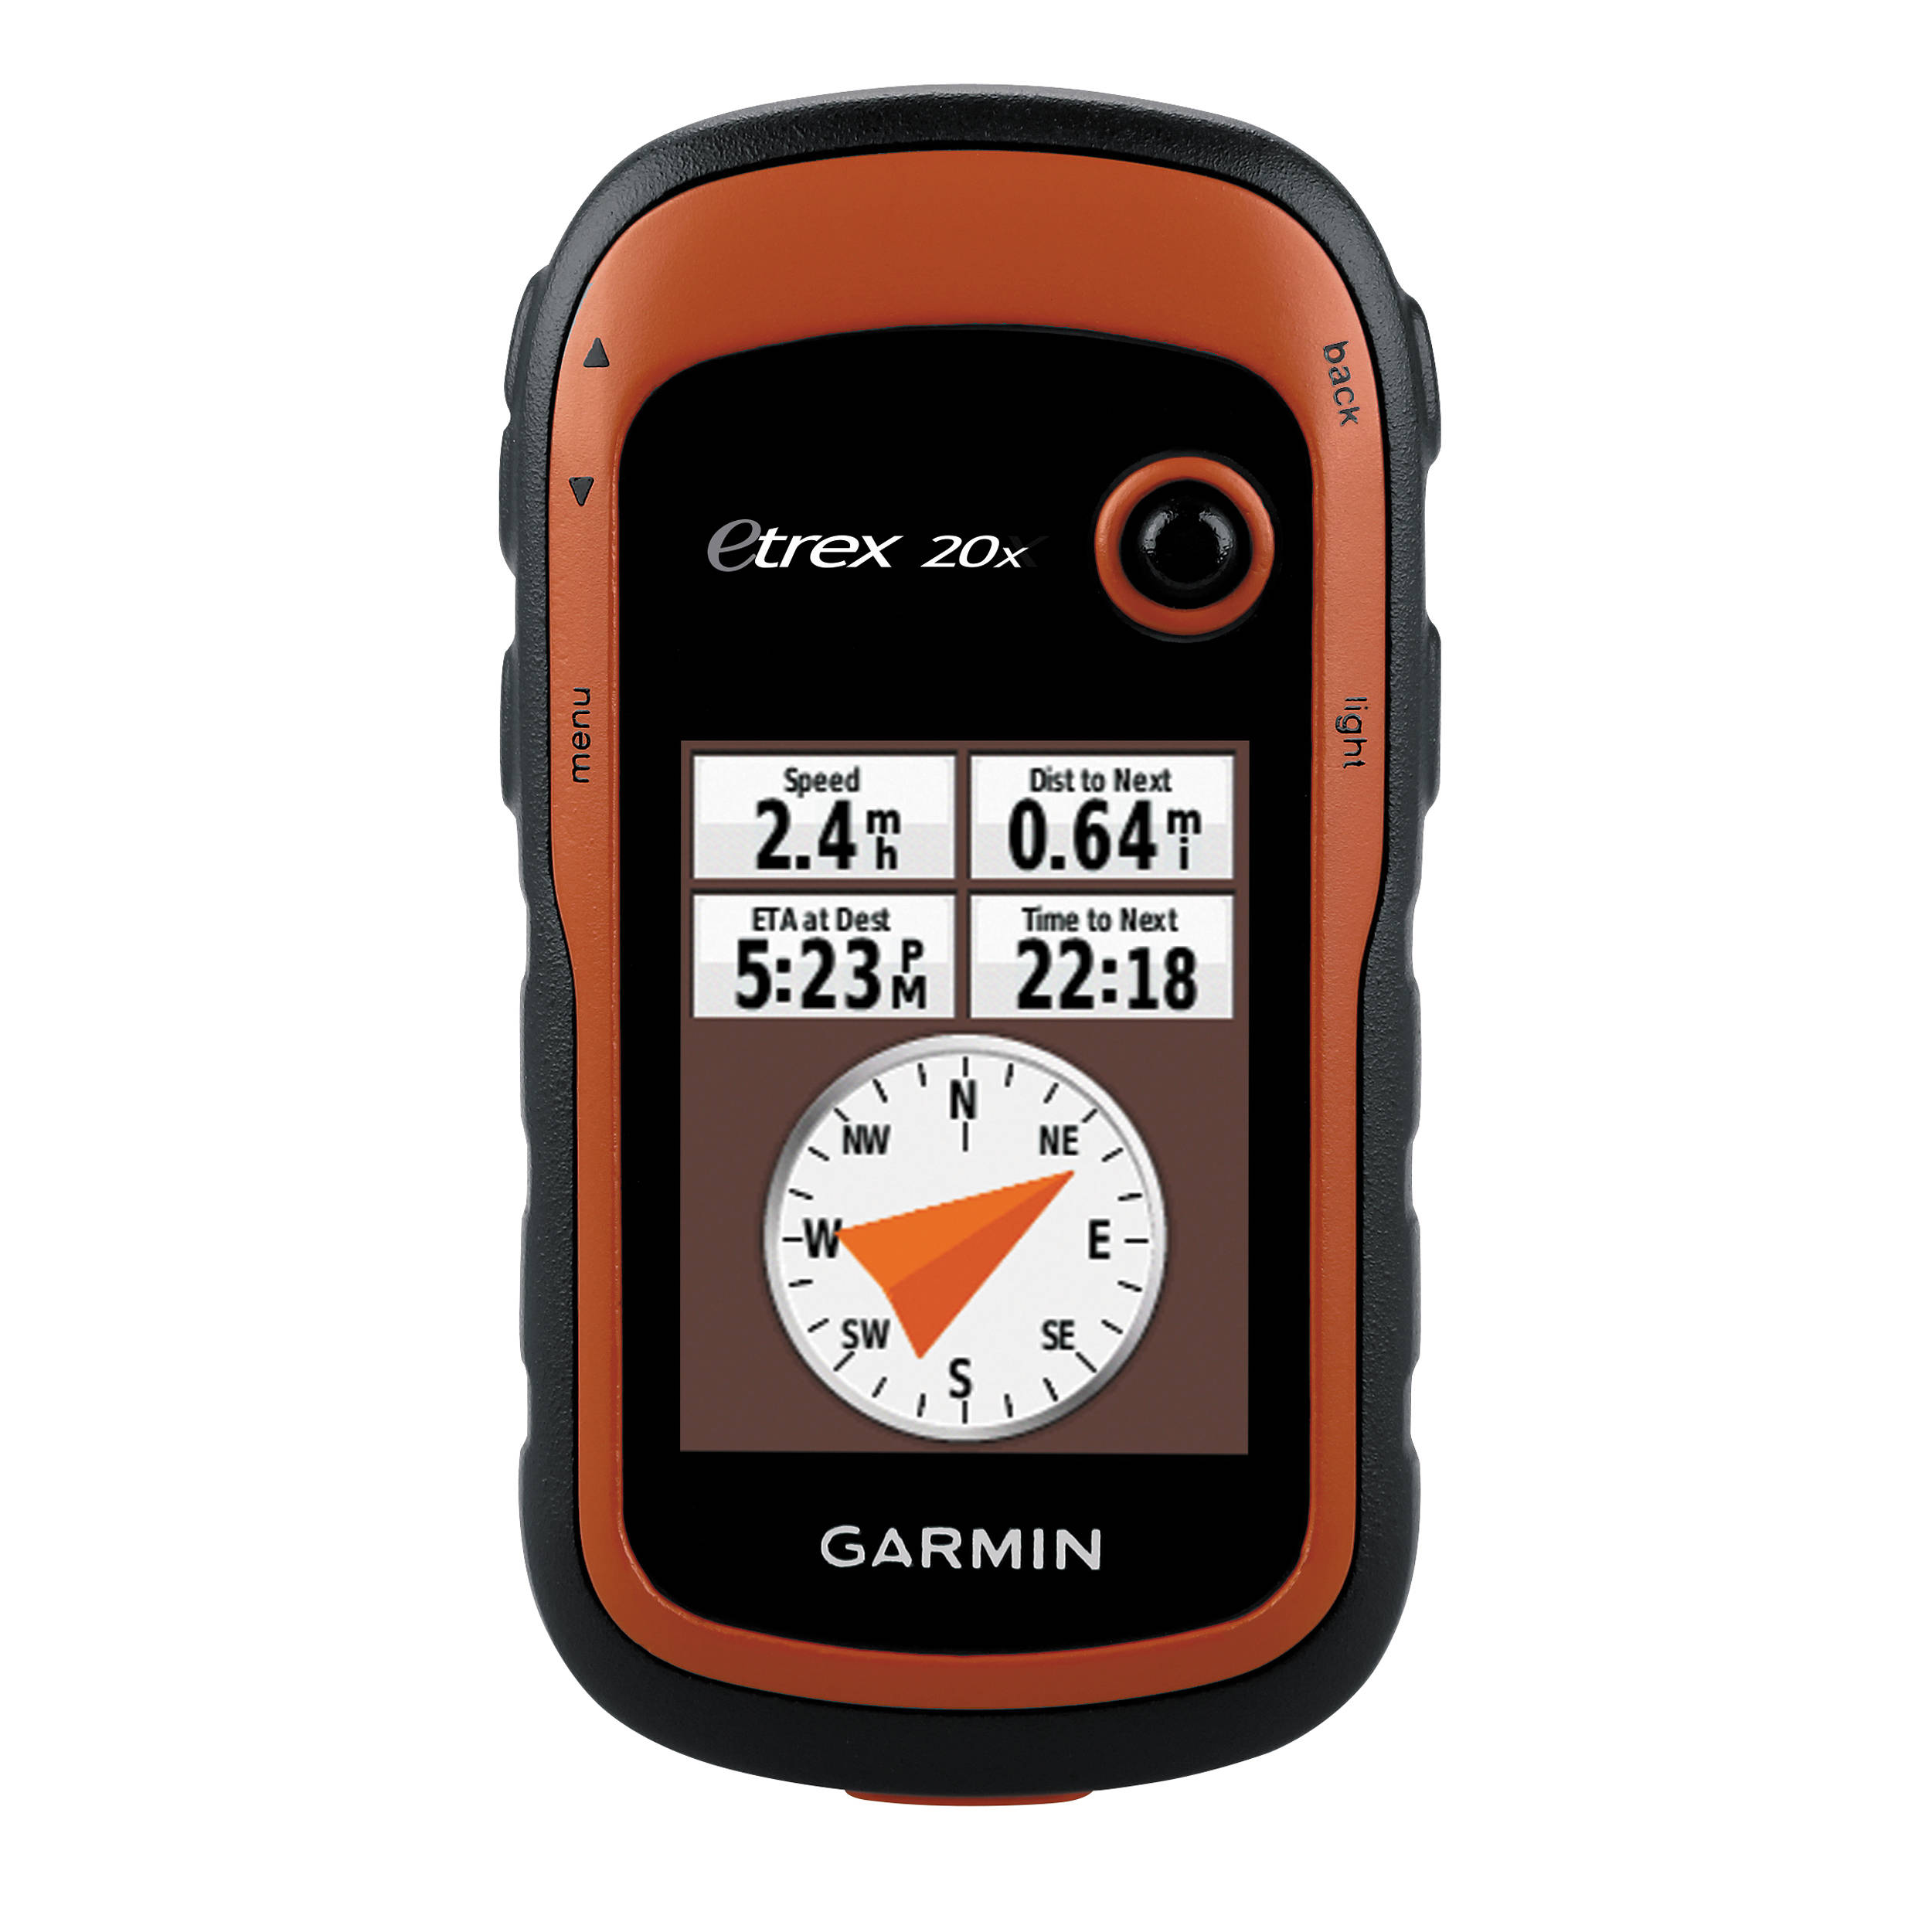 How To Use Garmin Etrex 20x